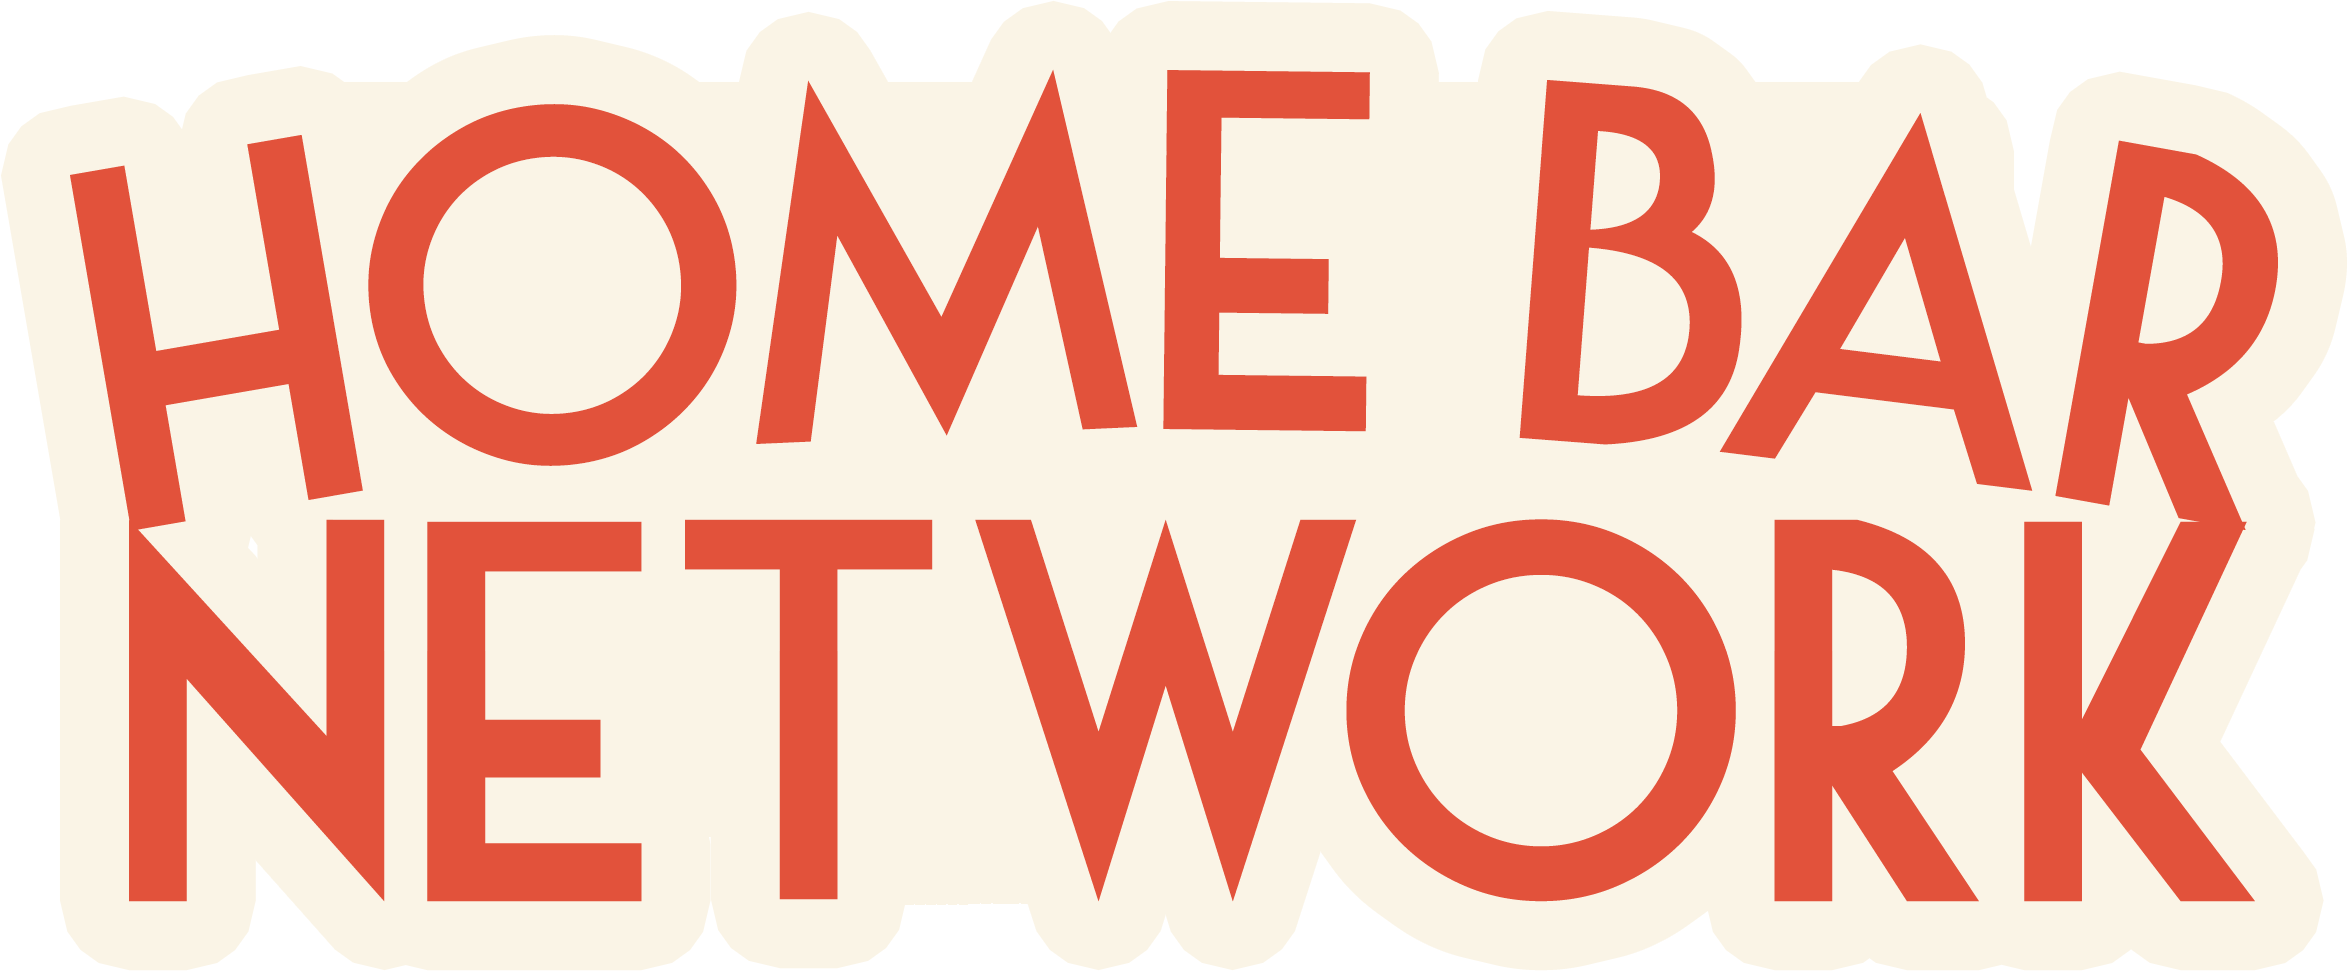 homebarnetwork-logo-filled